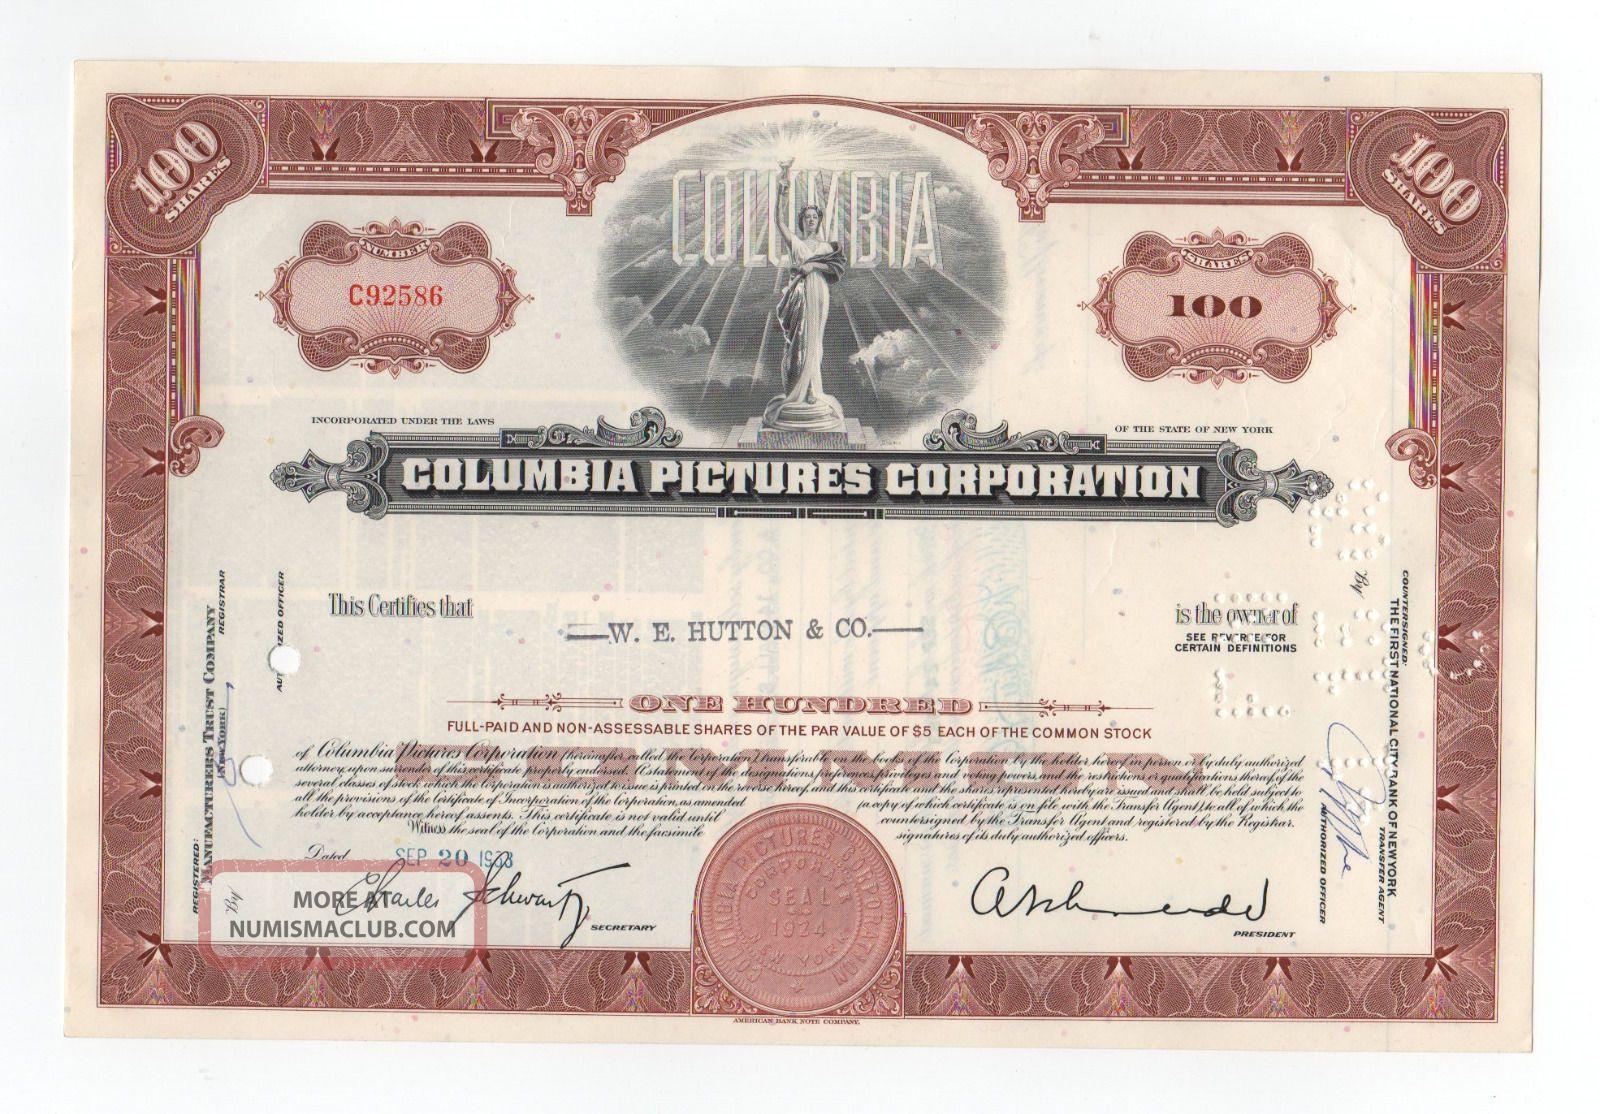 Columbia Pictures Corporation Stock Certificate Stocks & Bonds, Scripophily photo